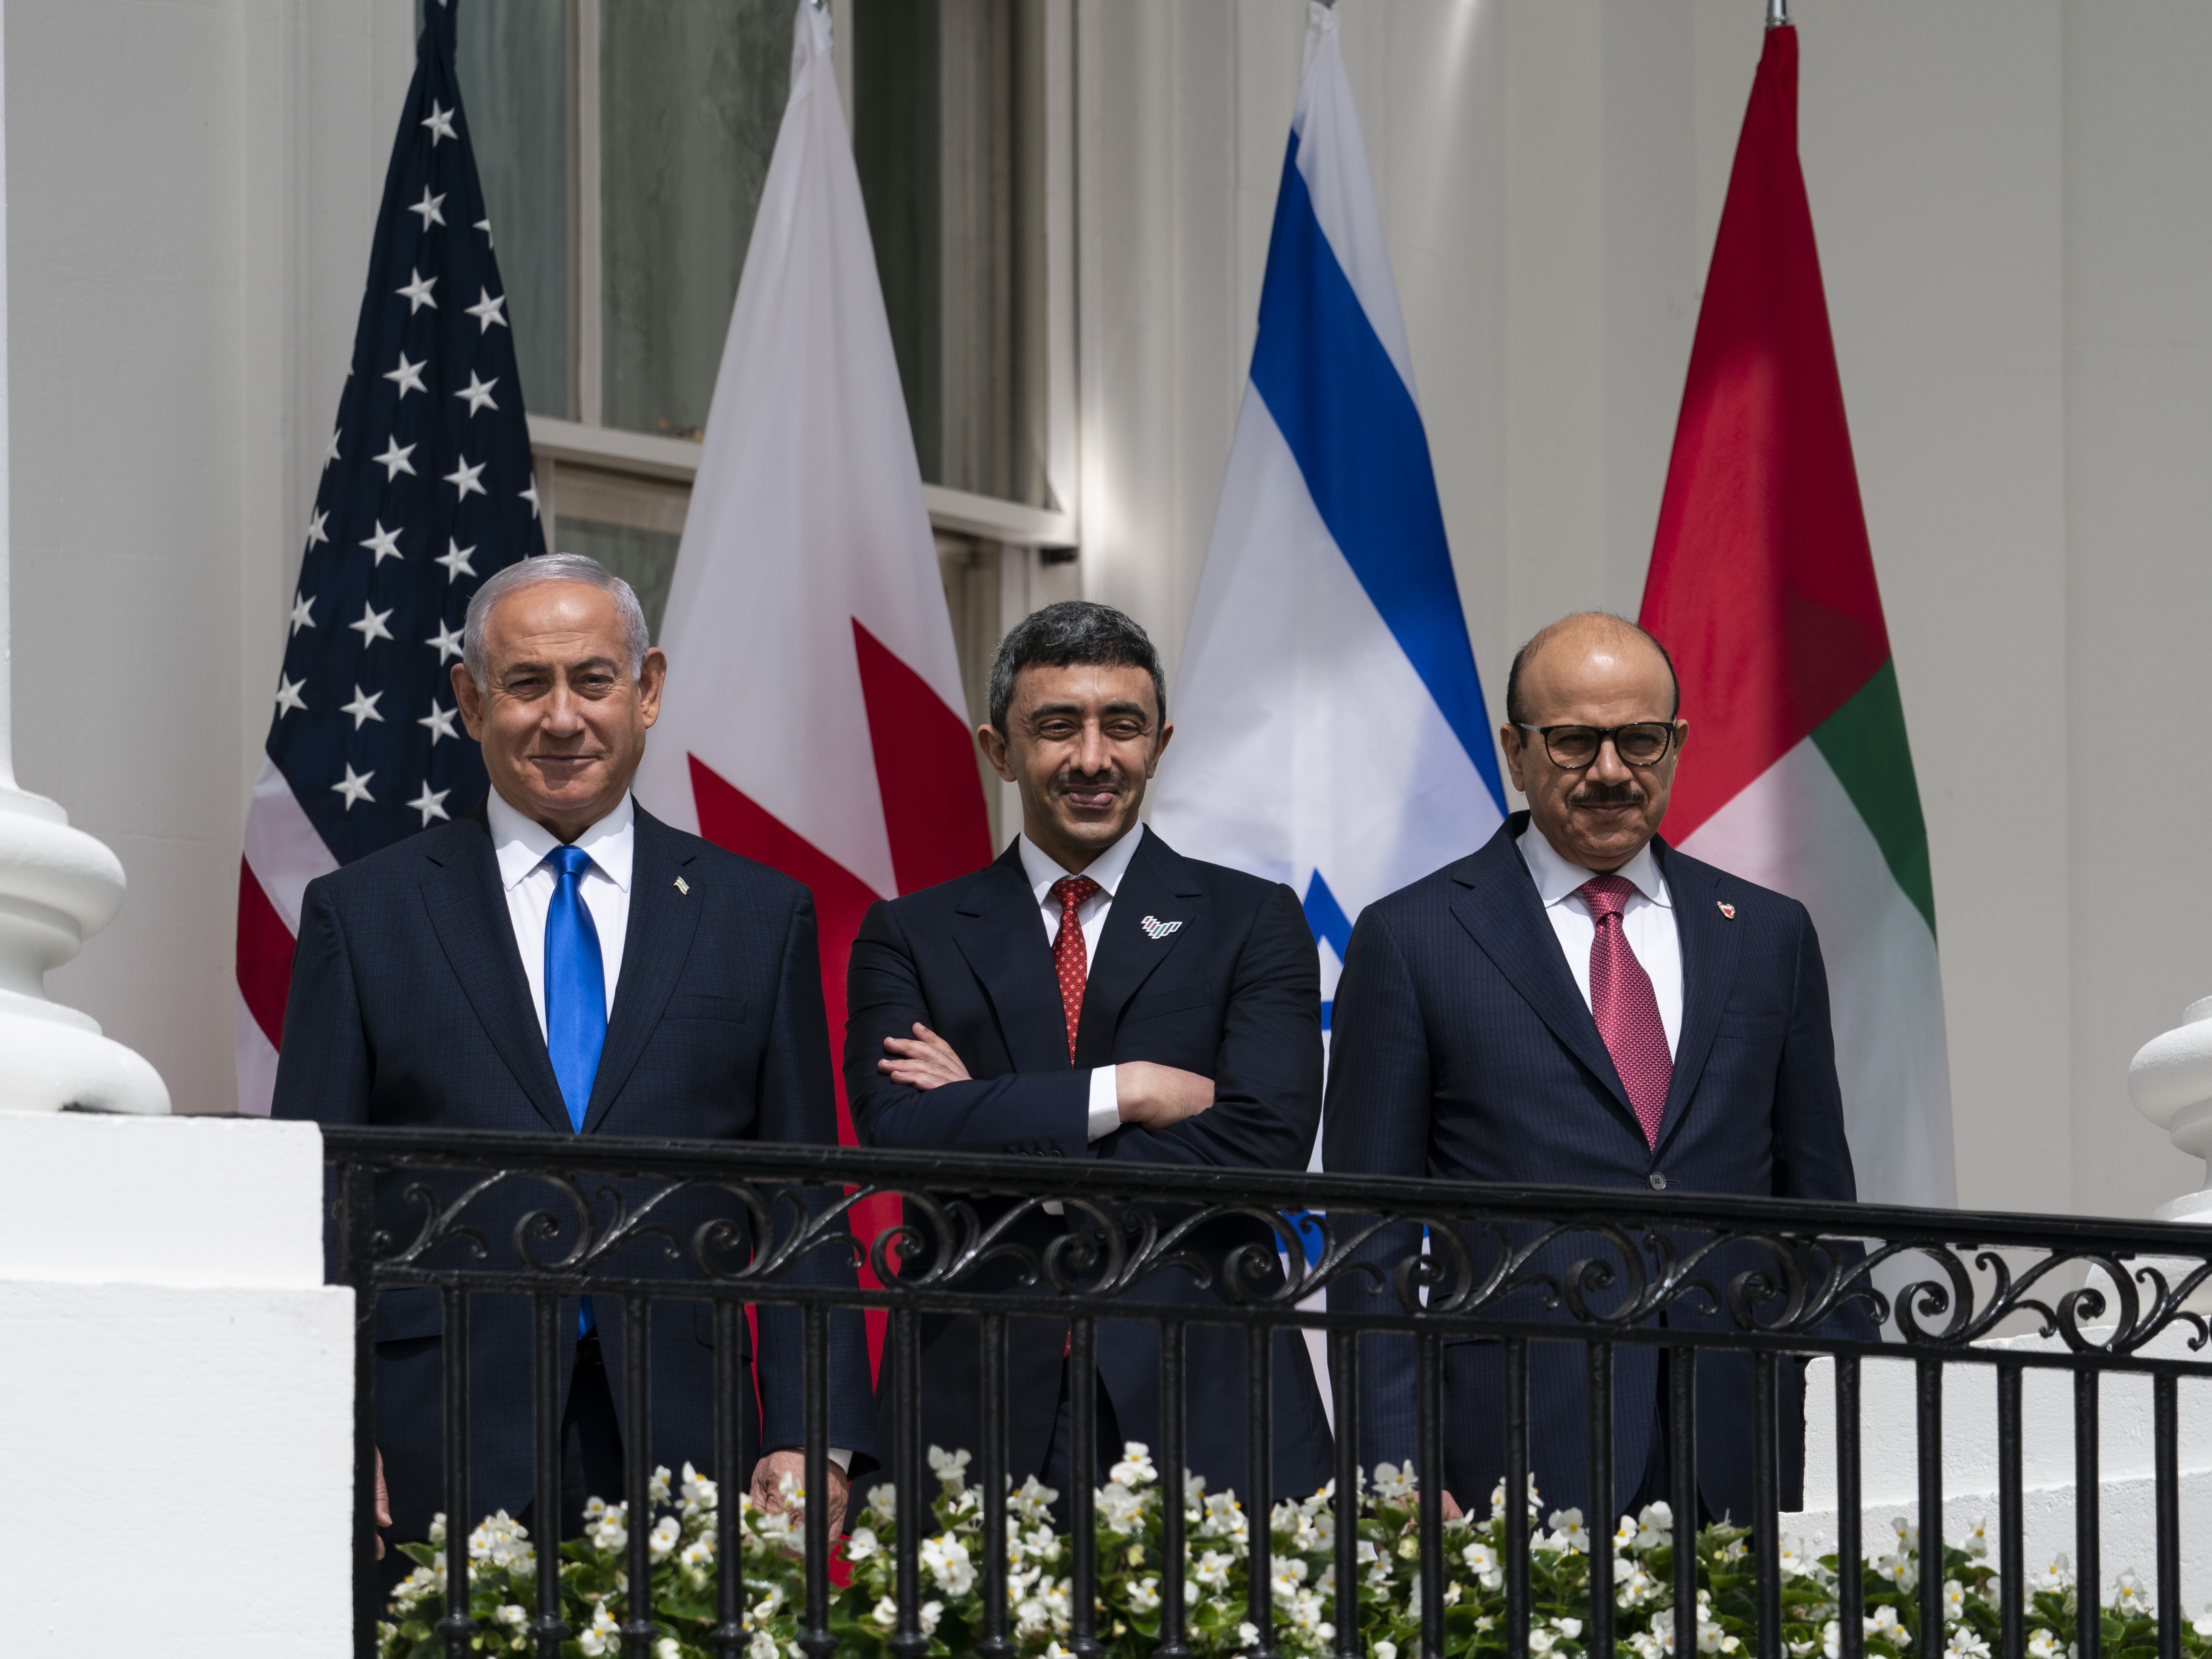 Israeli Prime Minister Benjamin Netanyahu (left), United Arab Emirates Foreign Minister Abdullah bin Zayed al-Nahyan (center) and Bahrain Foreign Minister Khalid bin Ahmed Al Khalifa during the Abraham Accords signing ceremony in September.